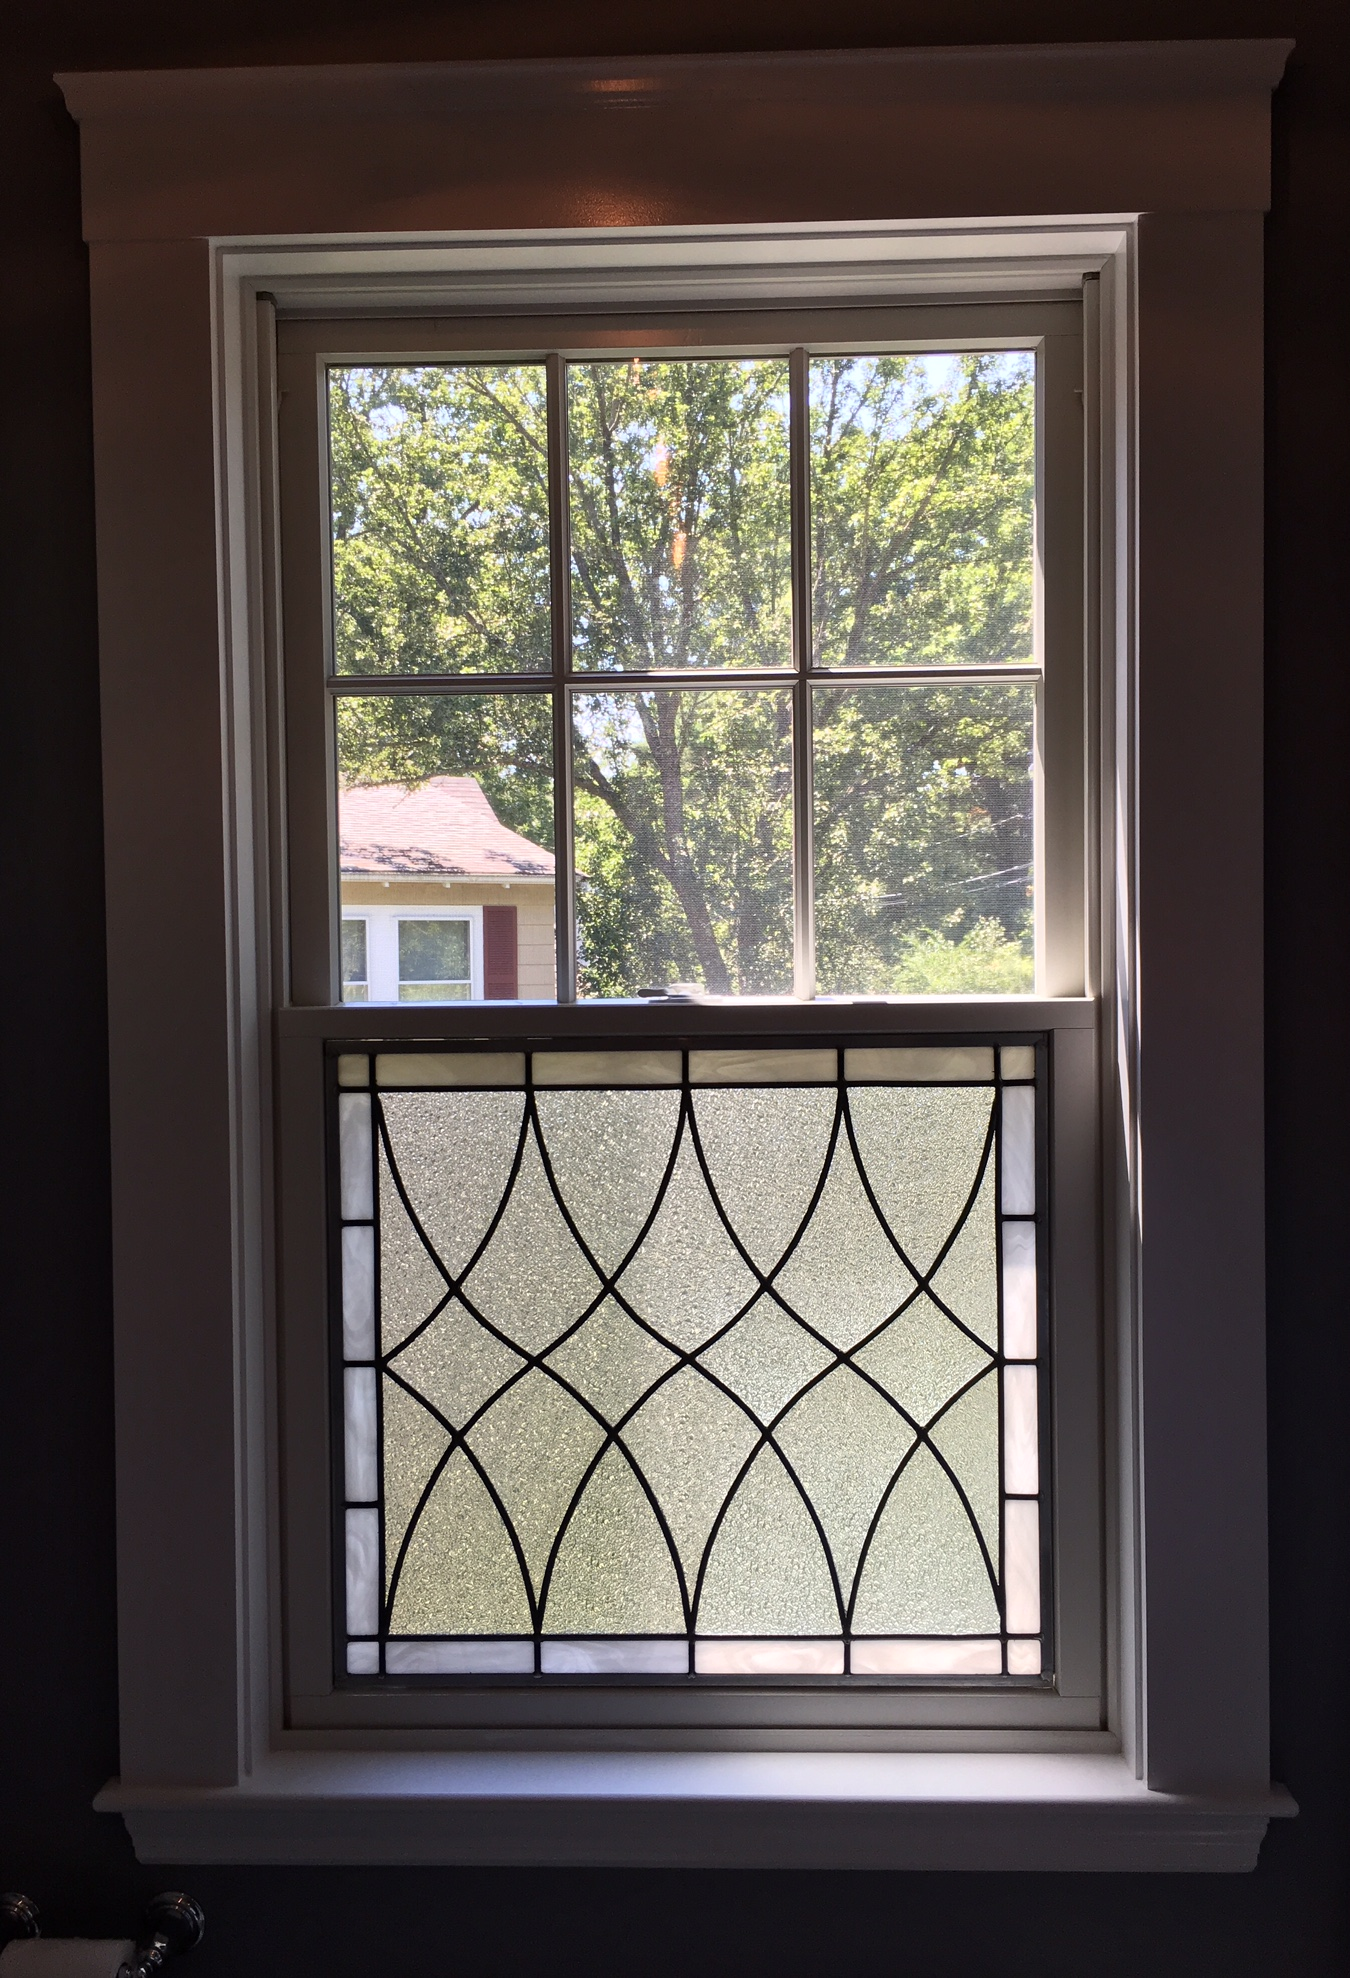 Clear Leaded Glass : Classic clear textured leaded glass window insert attached